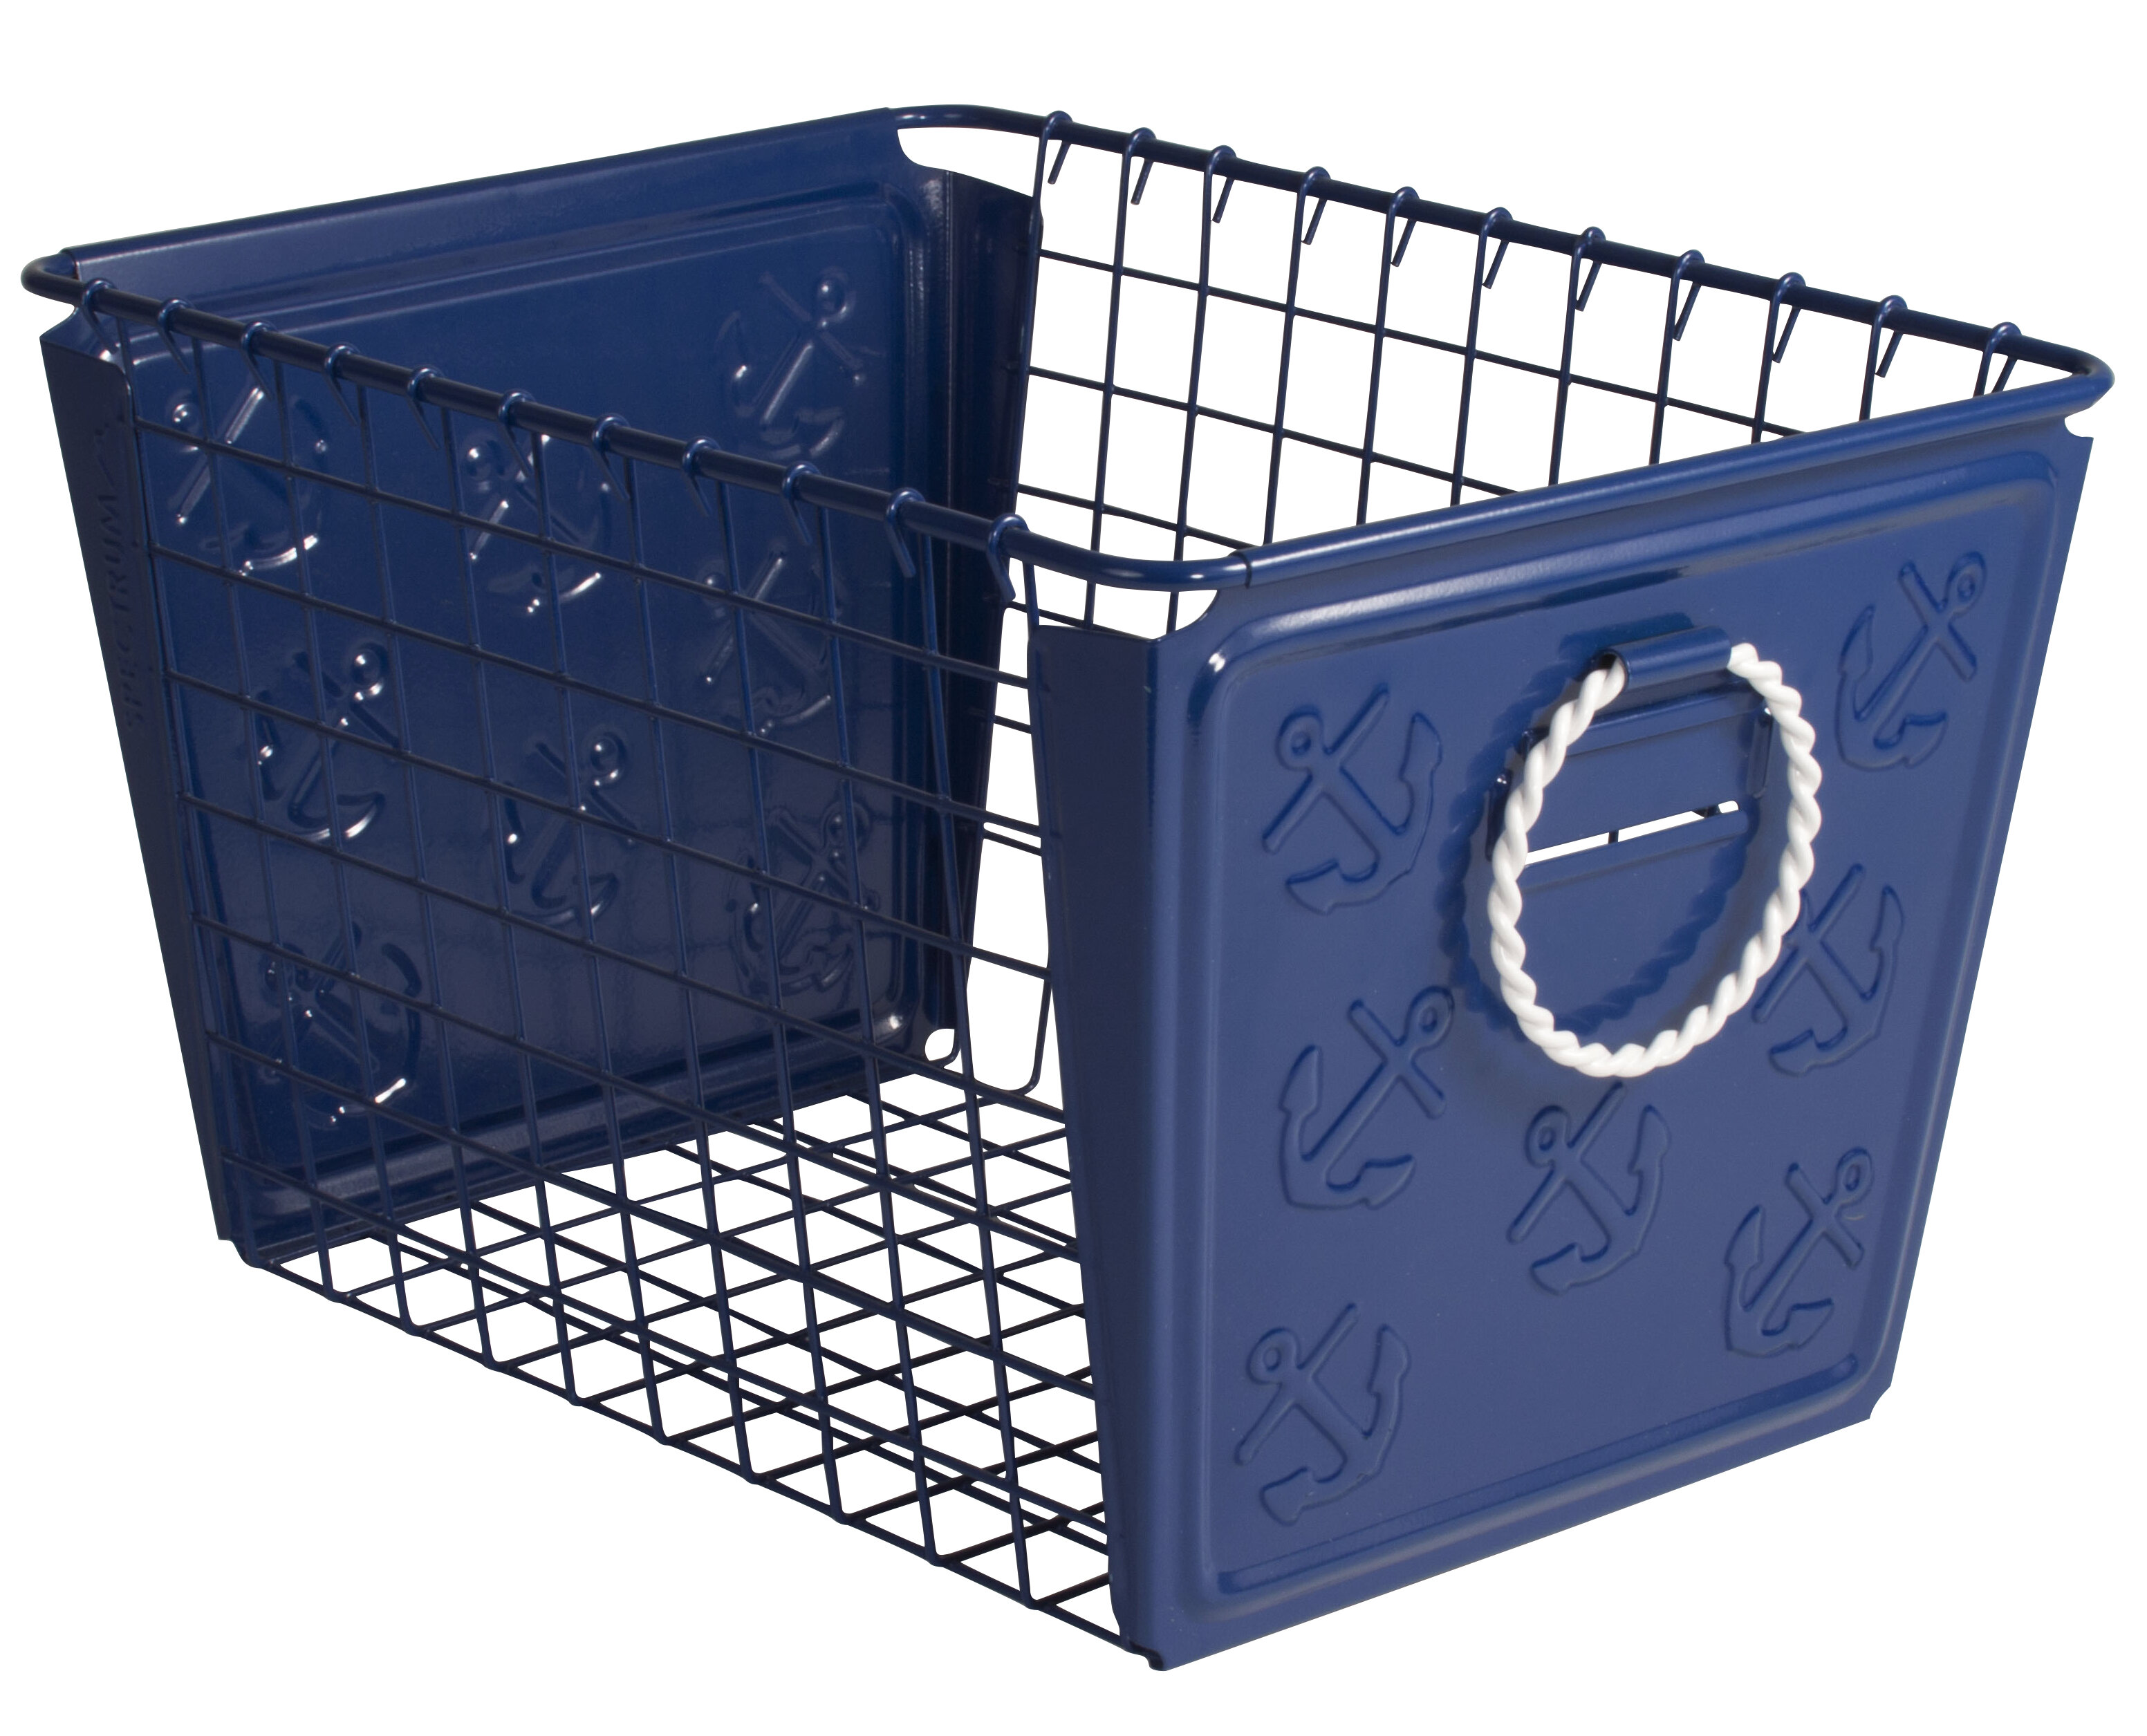 sc 1 st  Joss u0026 Main & Nautical Metal Basket | Joss u0026 Main